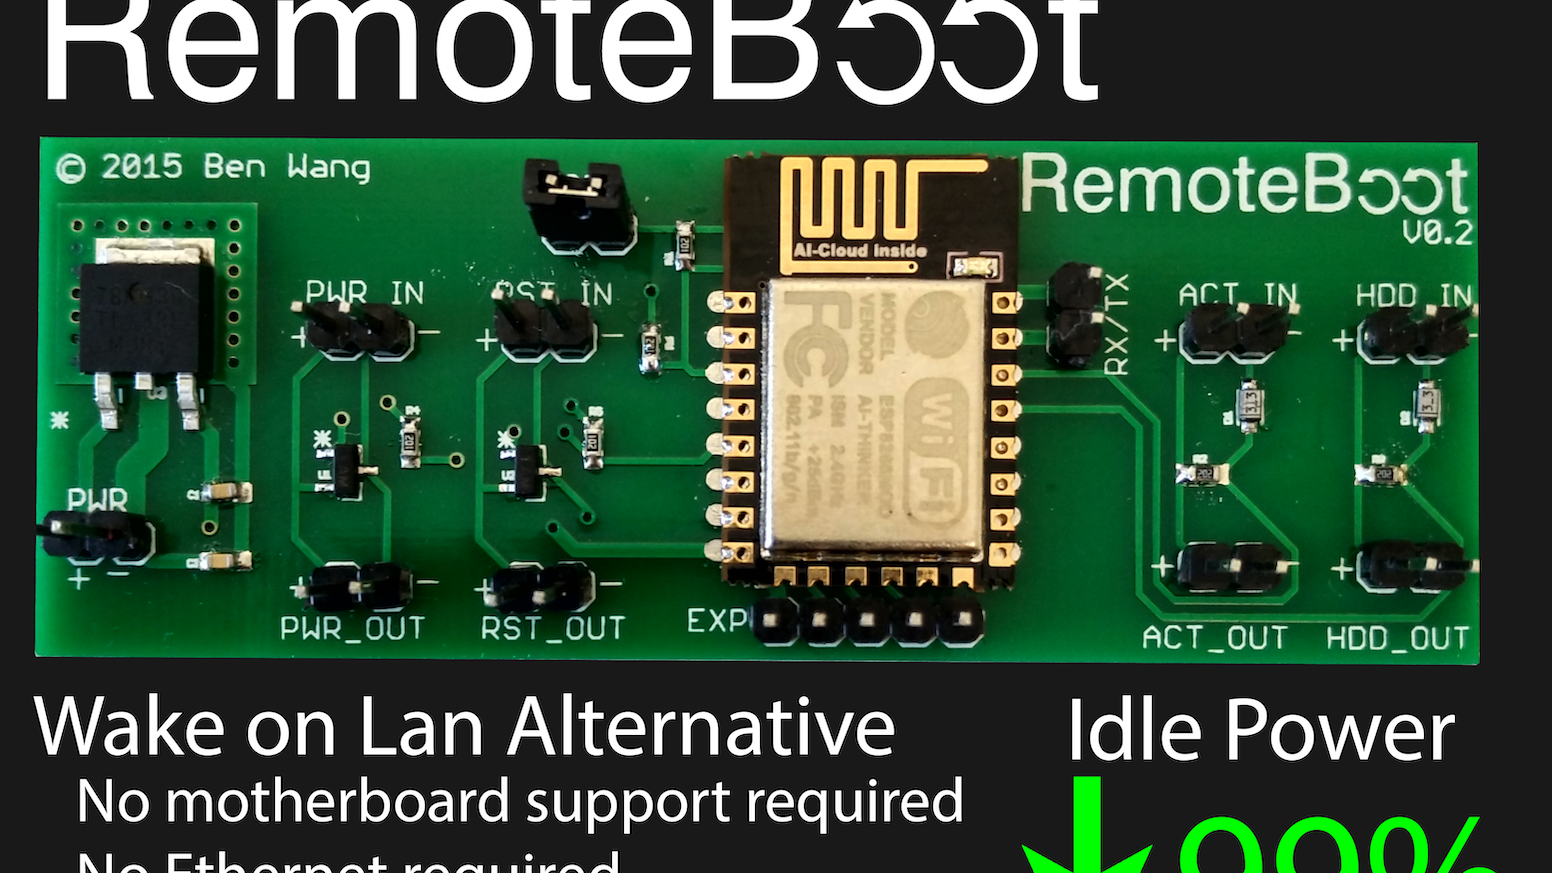 Remoteboot Wifi Remote Management Module For Pcs By Ben Wang Circuit Access The Files And Programs On Your Desktop Computer Anywhere Any Time Without Leaving It